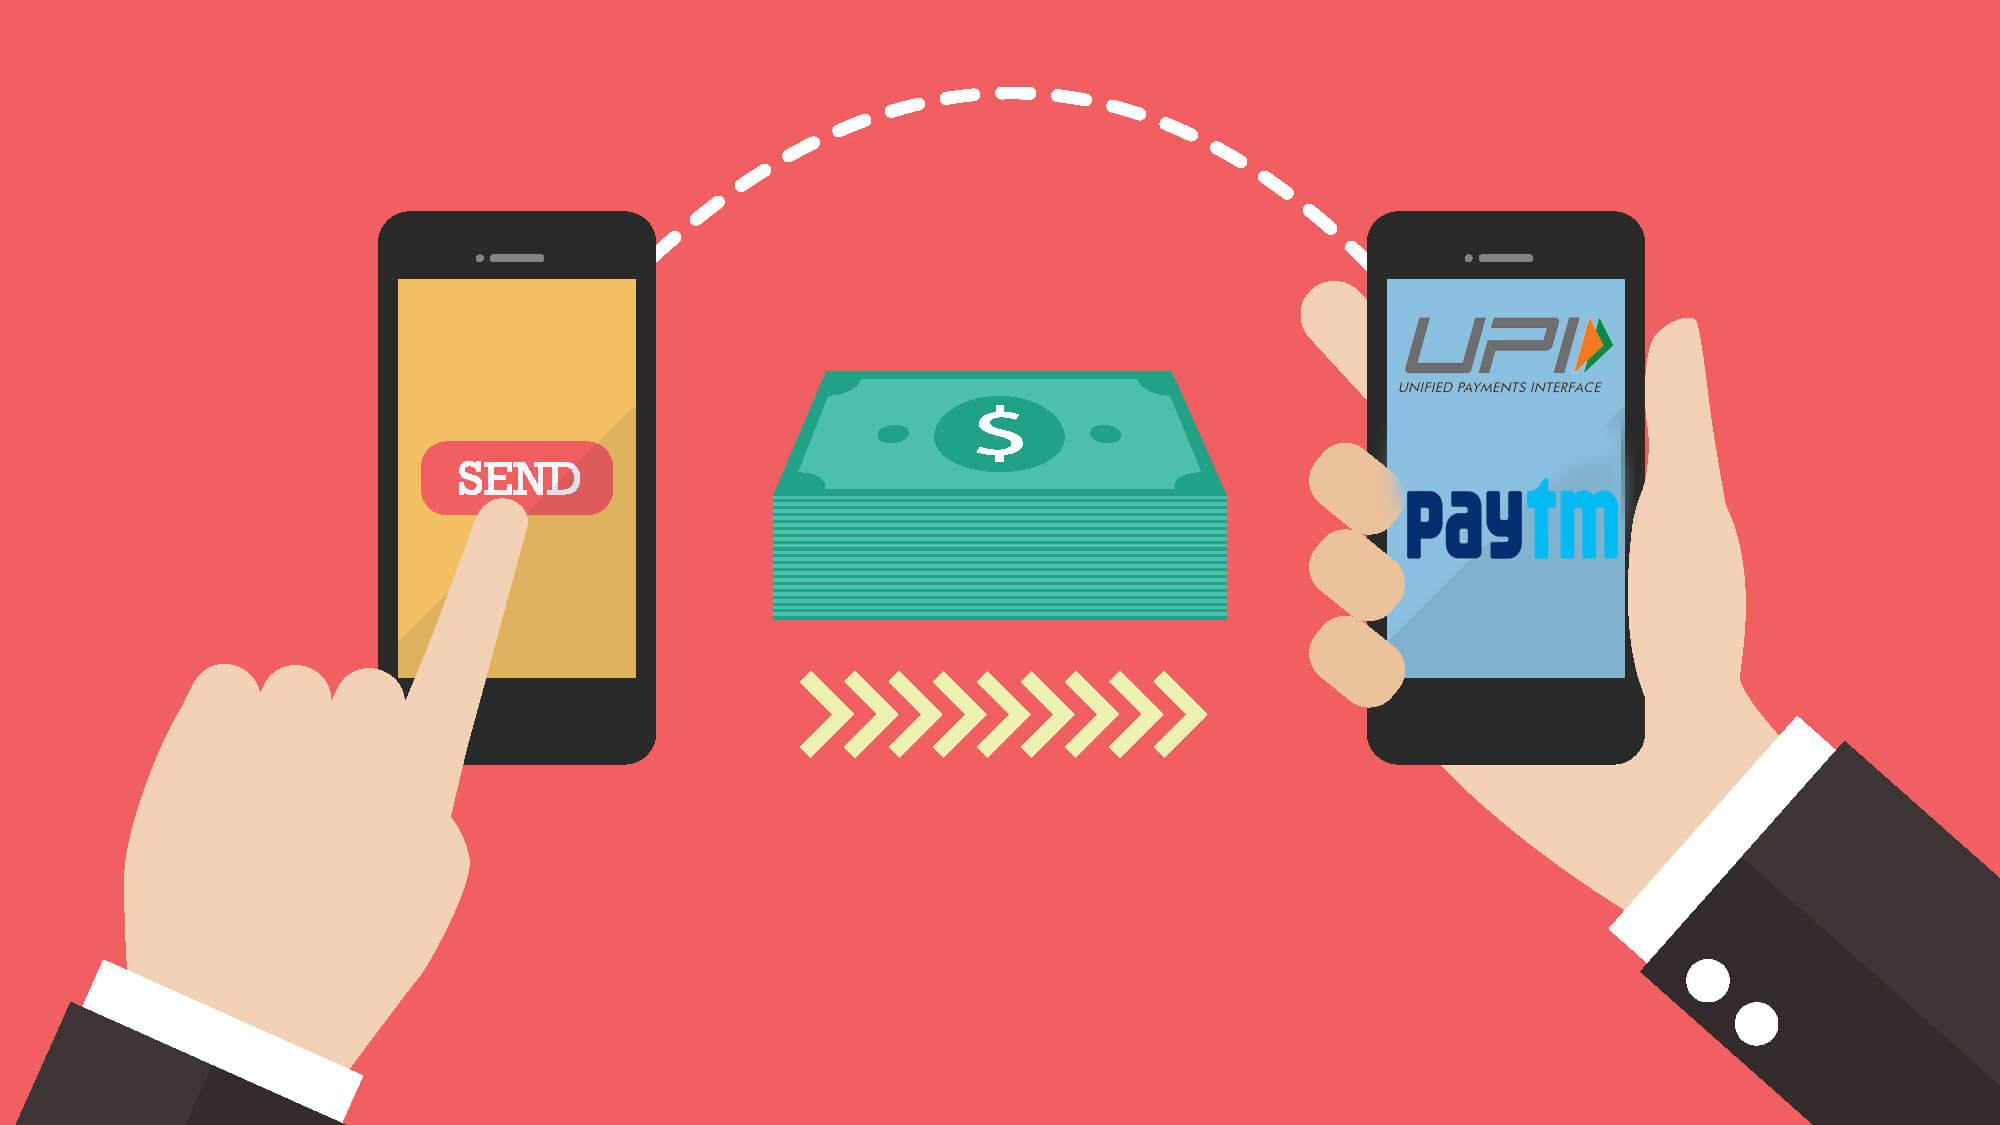 UPI Transaction Limit Per Day for ICICI, HDFC, BHIM, PAYTM & Google Pay